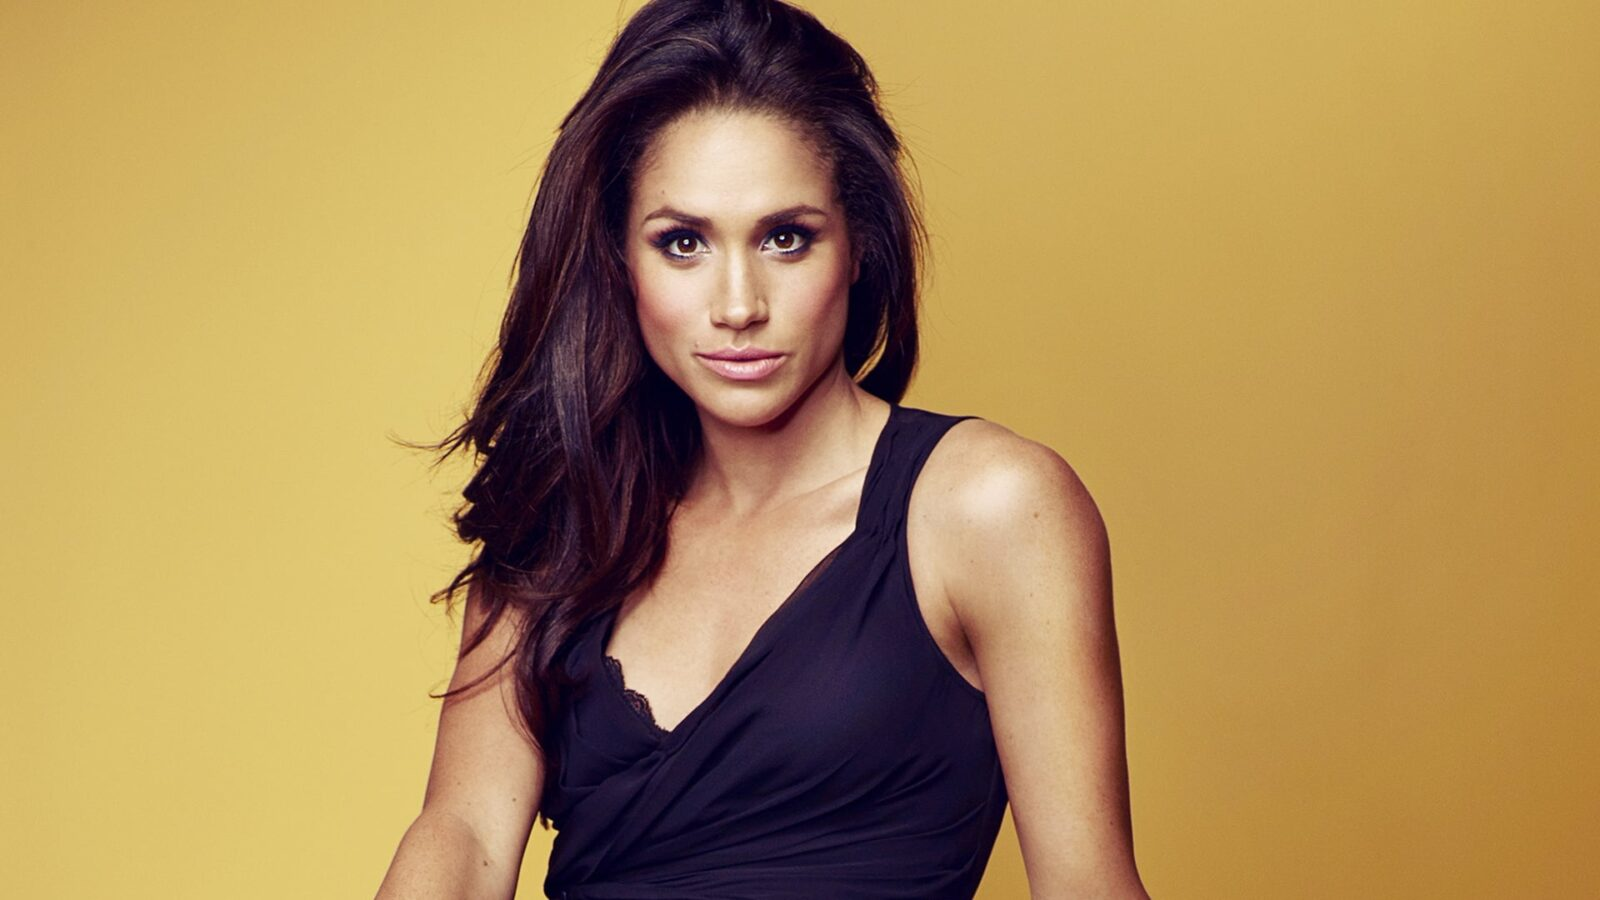 Meghan Markle HD wallpapers free Download - Cute Hairstyle